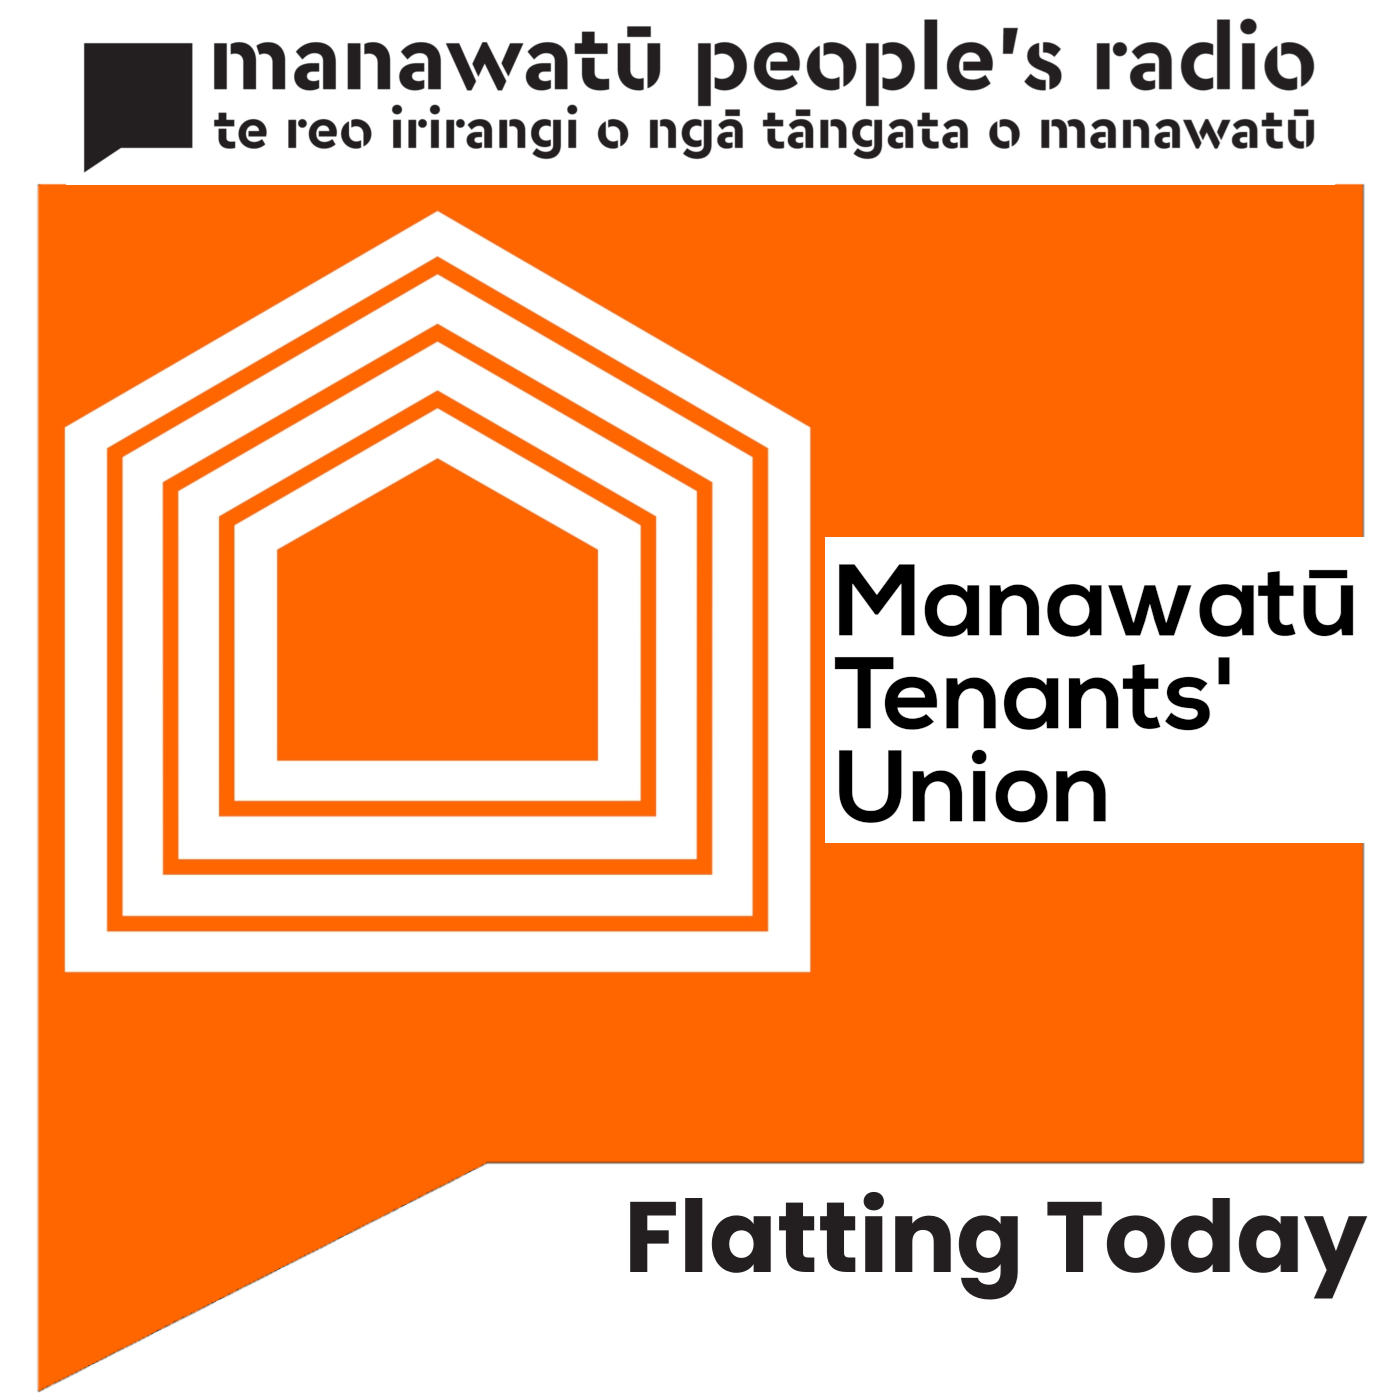 https://cdn.accessradio.org/StationFolder/manawatu/Images/MPRFlattingToday1.png